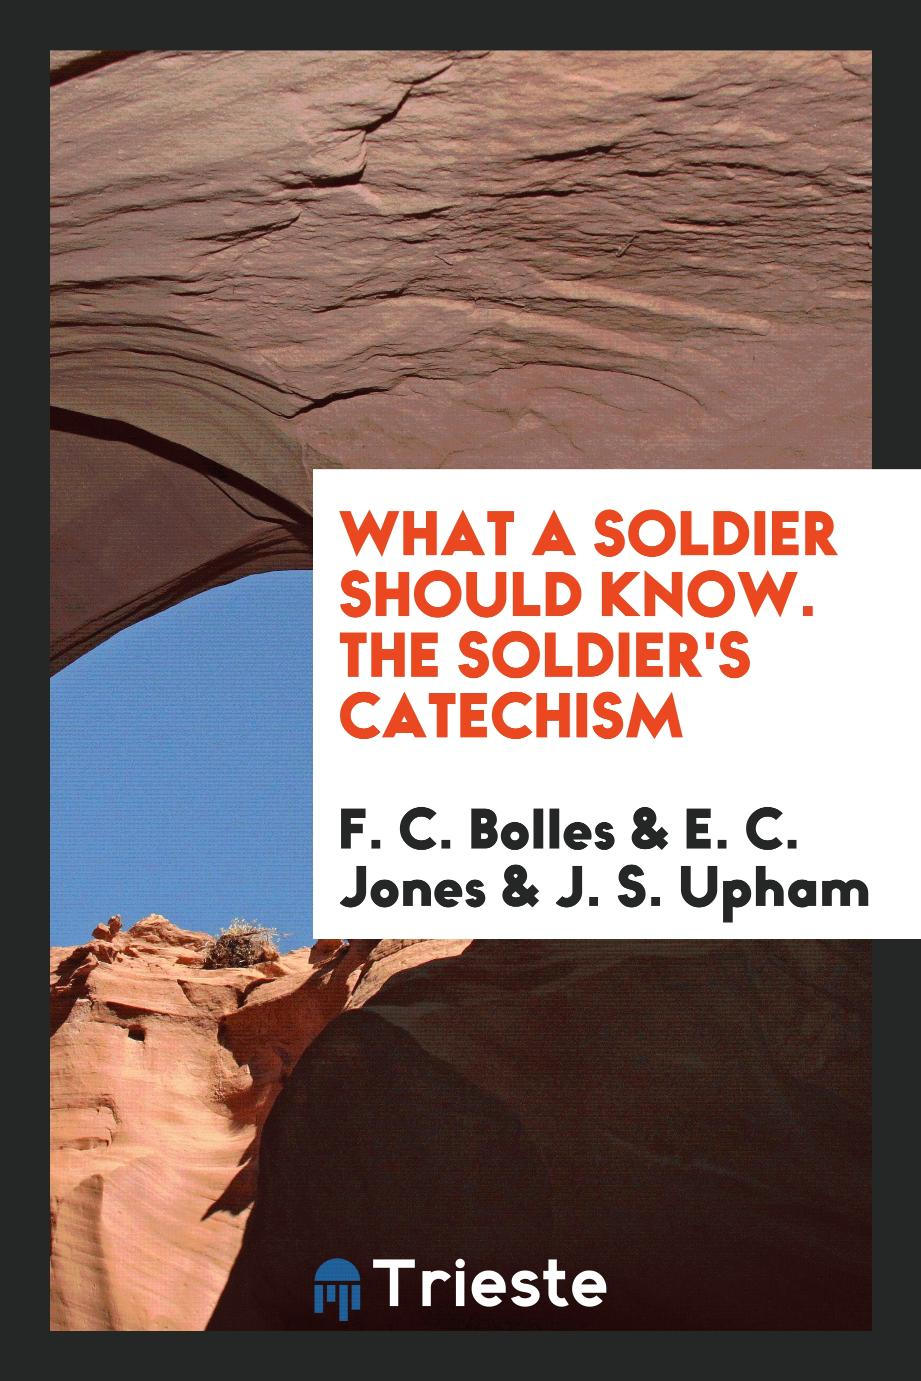 What a Soldier Should Know. The Soldier's Catechism